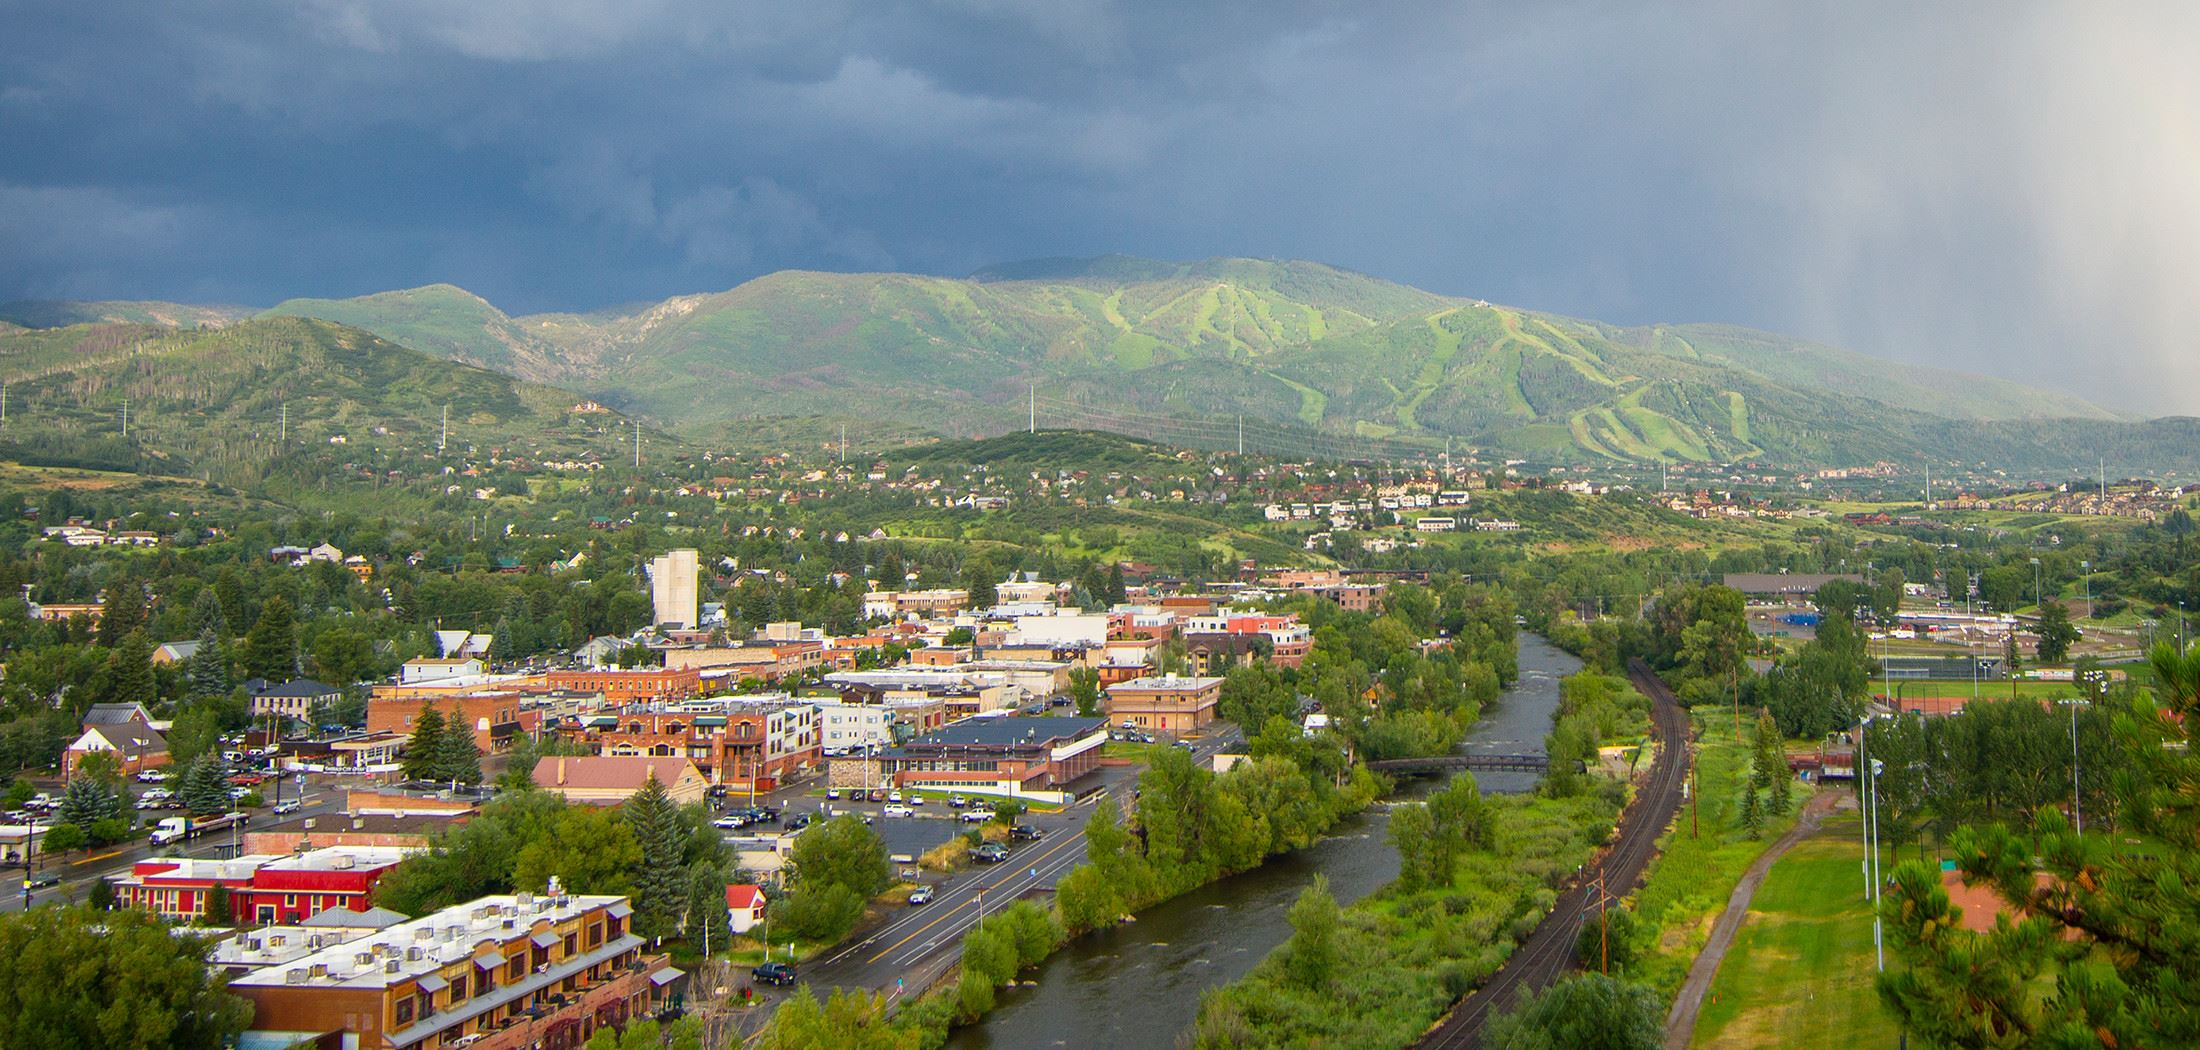 Downtown Steamboat Springs with Mt. Werner in distance